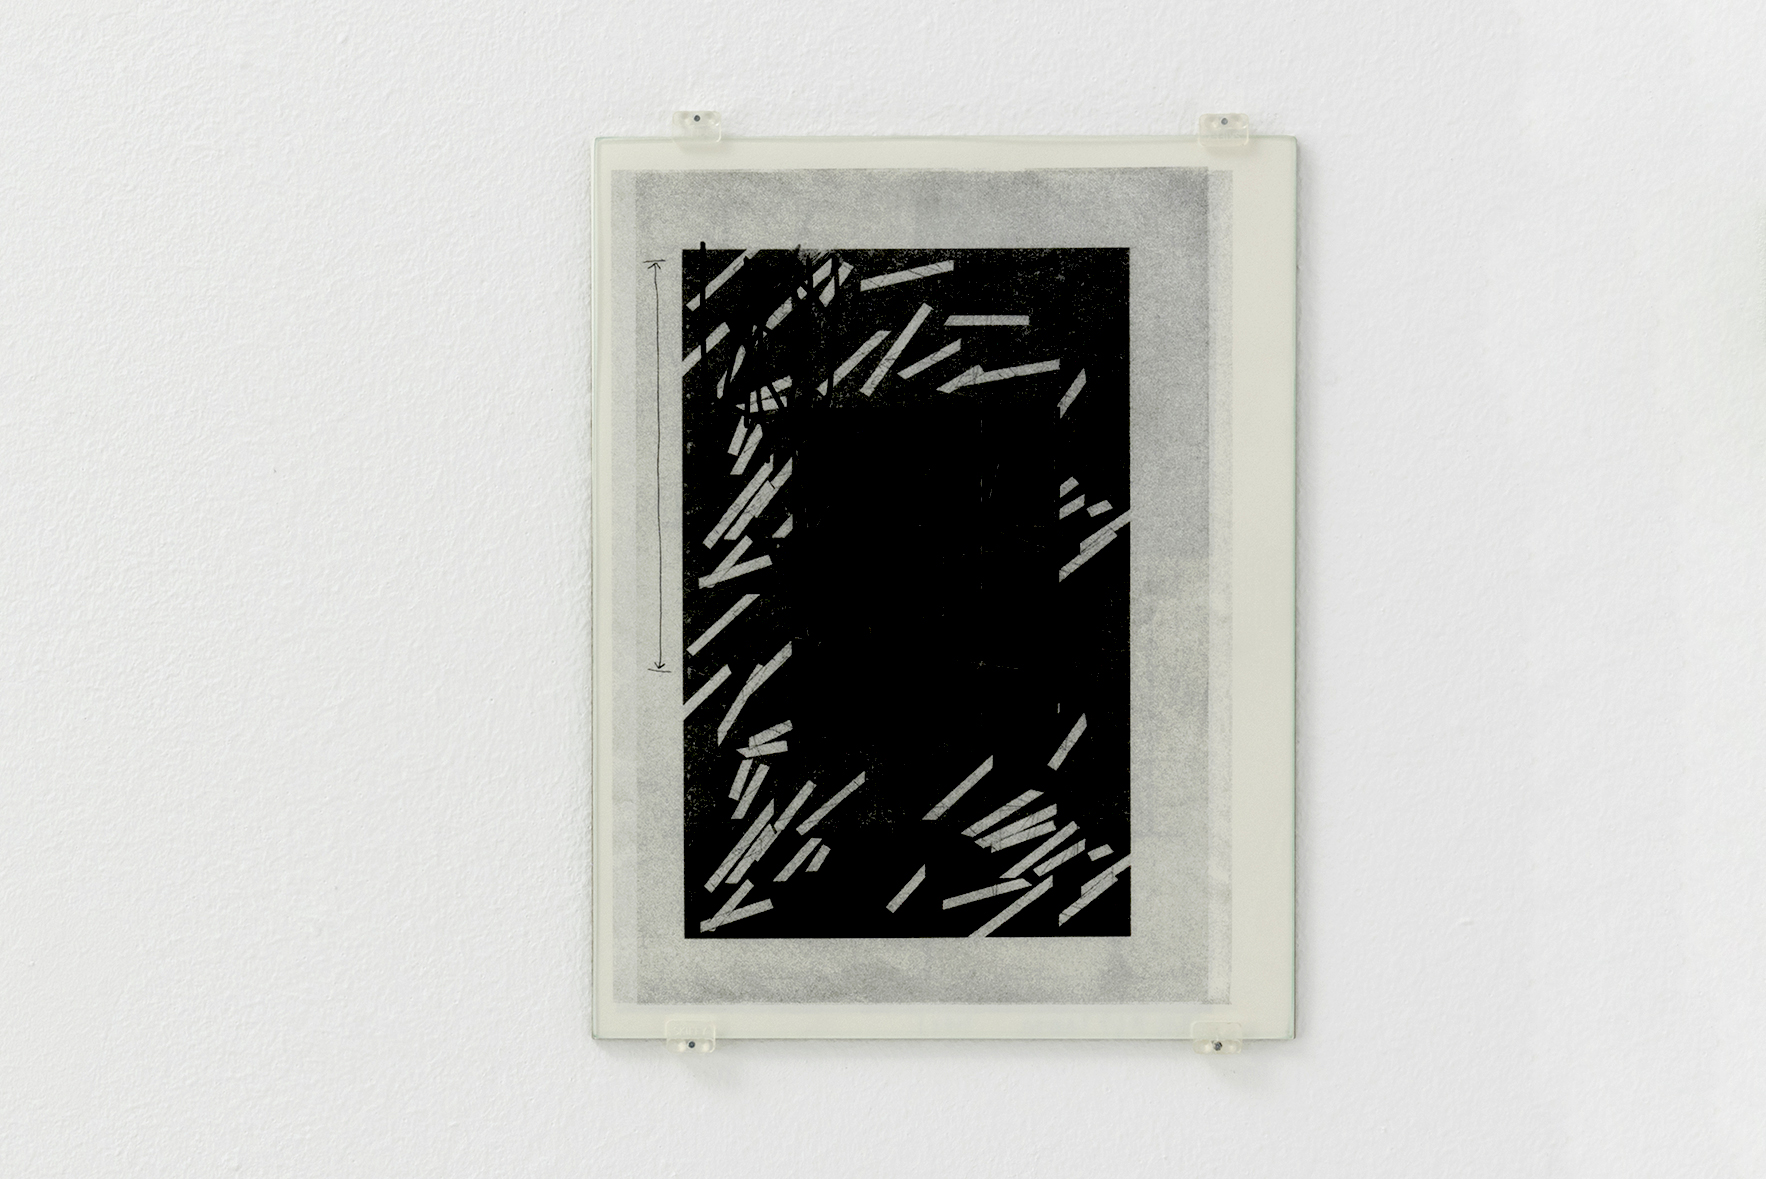 Zeichnungen 13, 2015 | A Drawing Placed Between Two Objects (with Mark Manders) | ProjecteSD